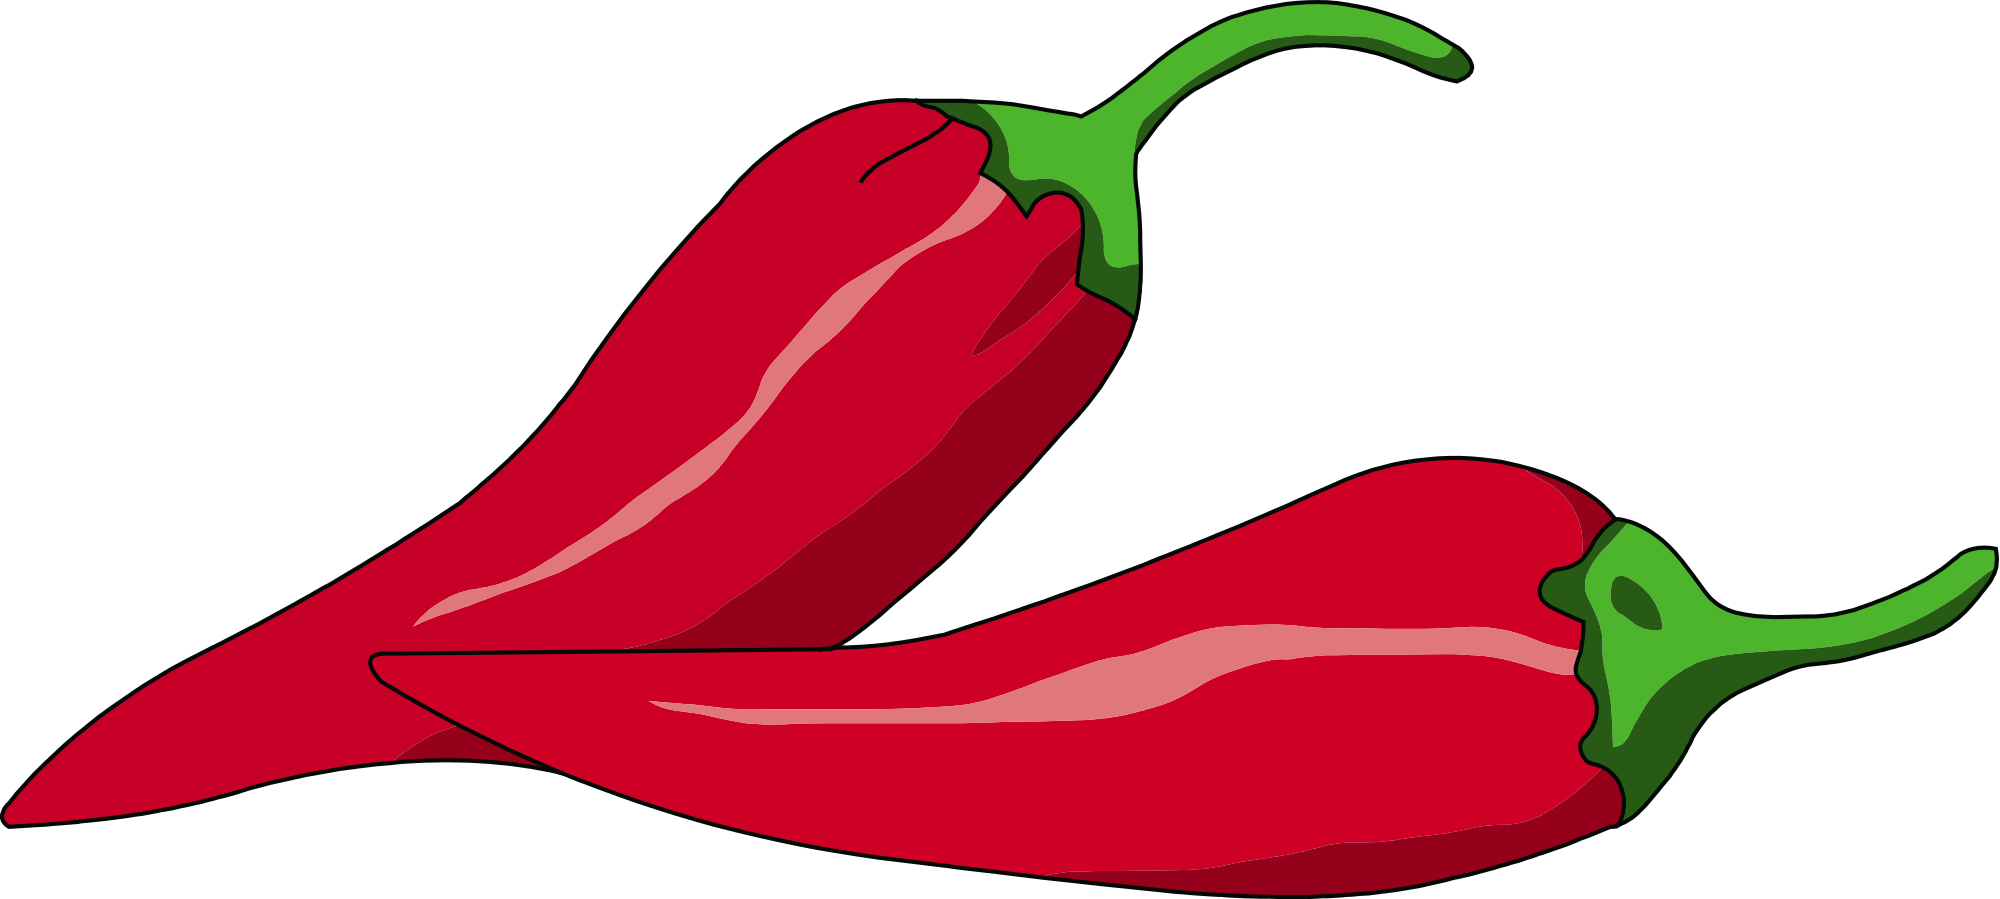 Pepper clipart jalapeno, Pepper jalapeno Transparent FREE.